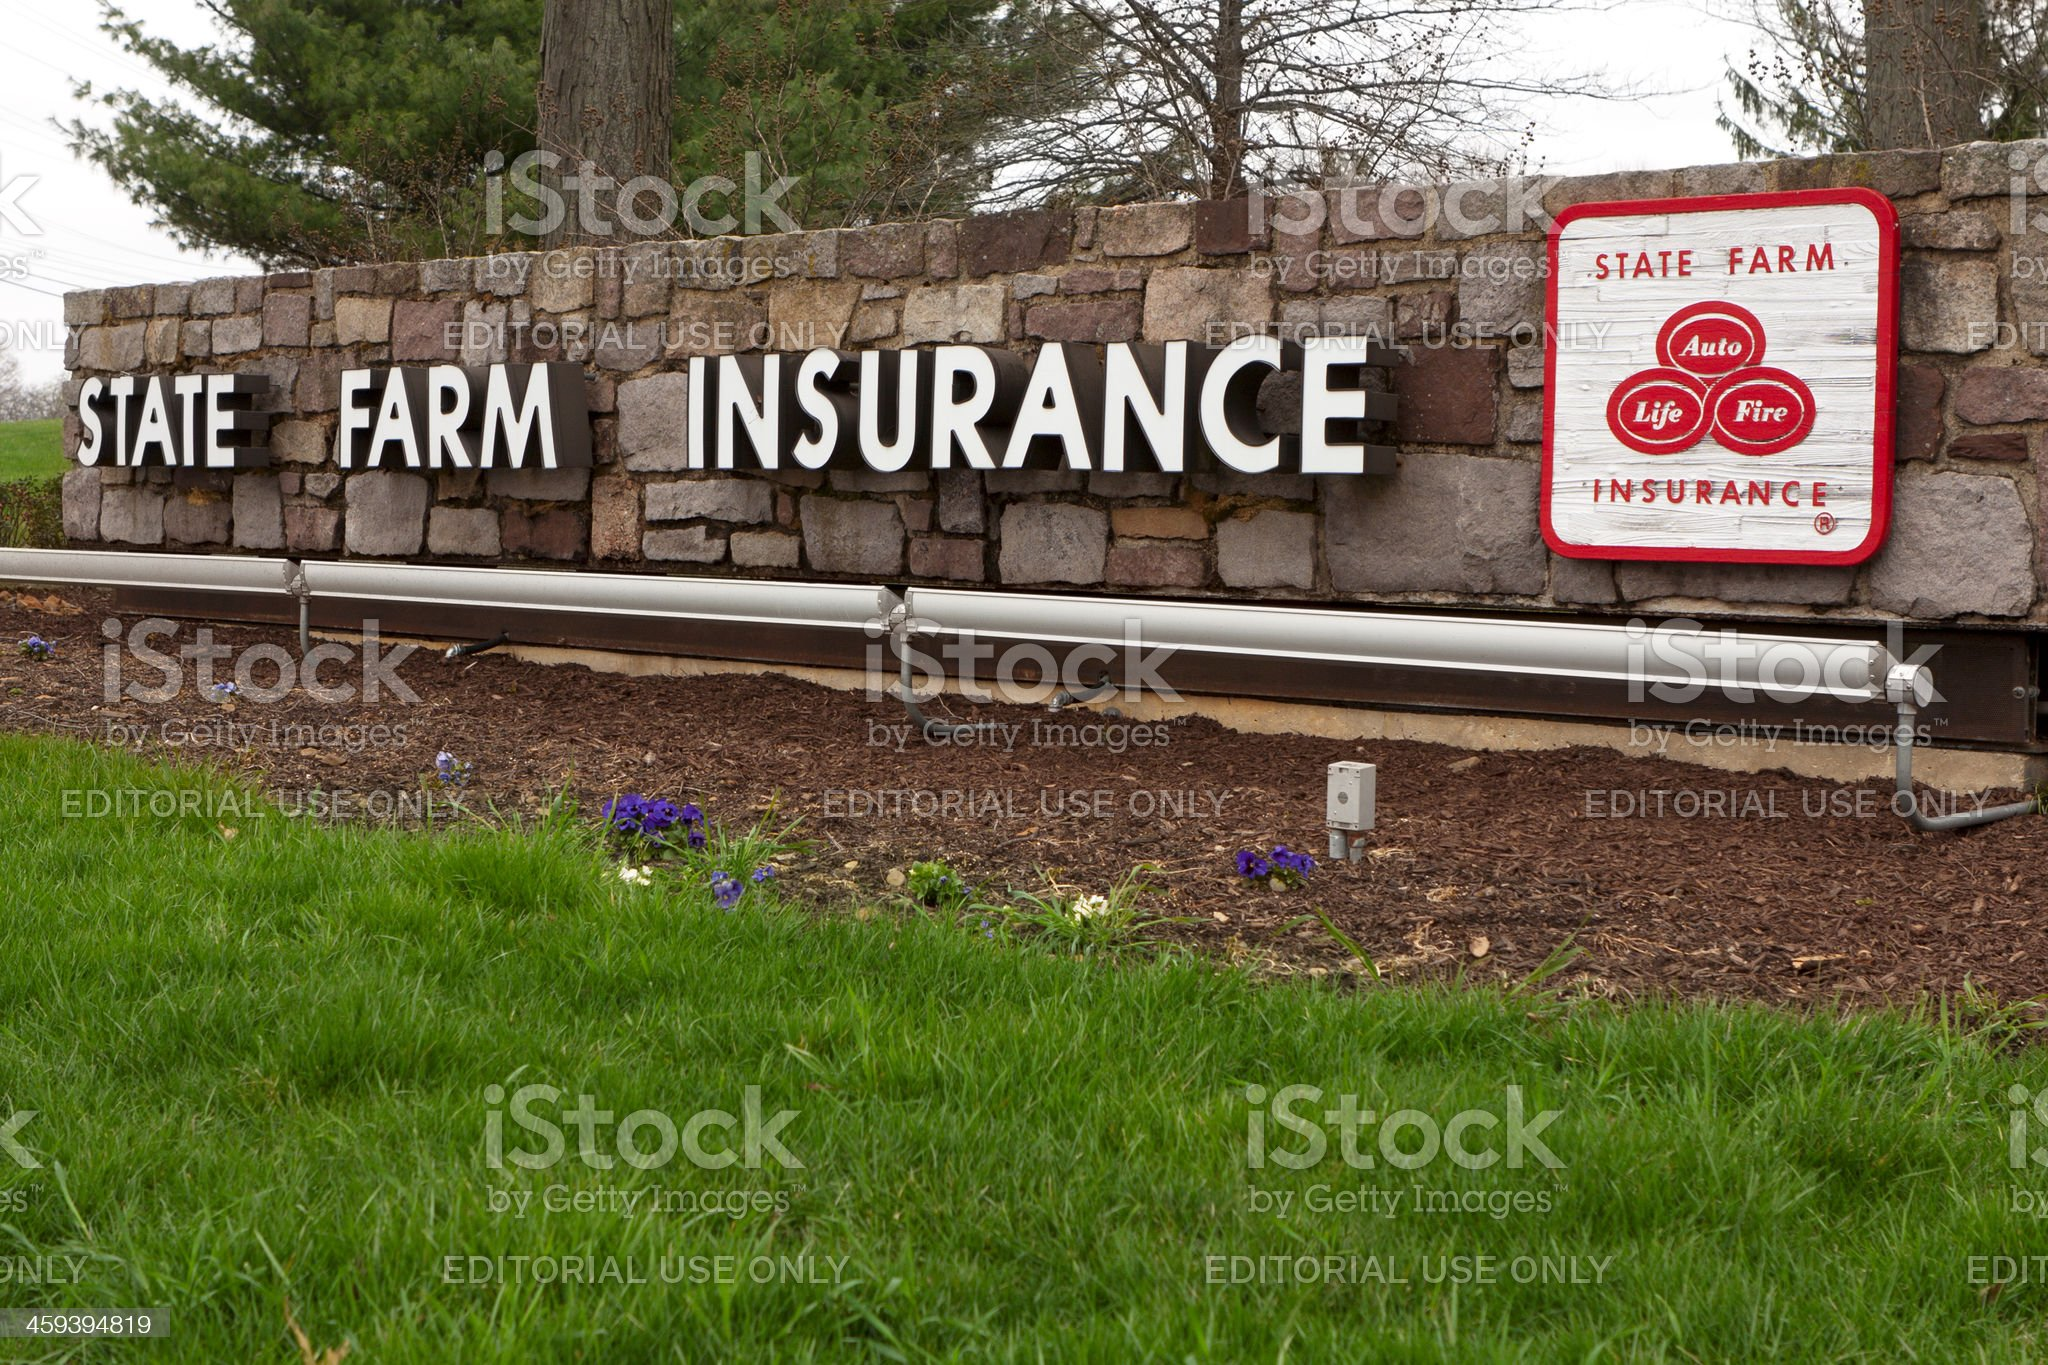 The State Farm Insurance